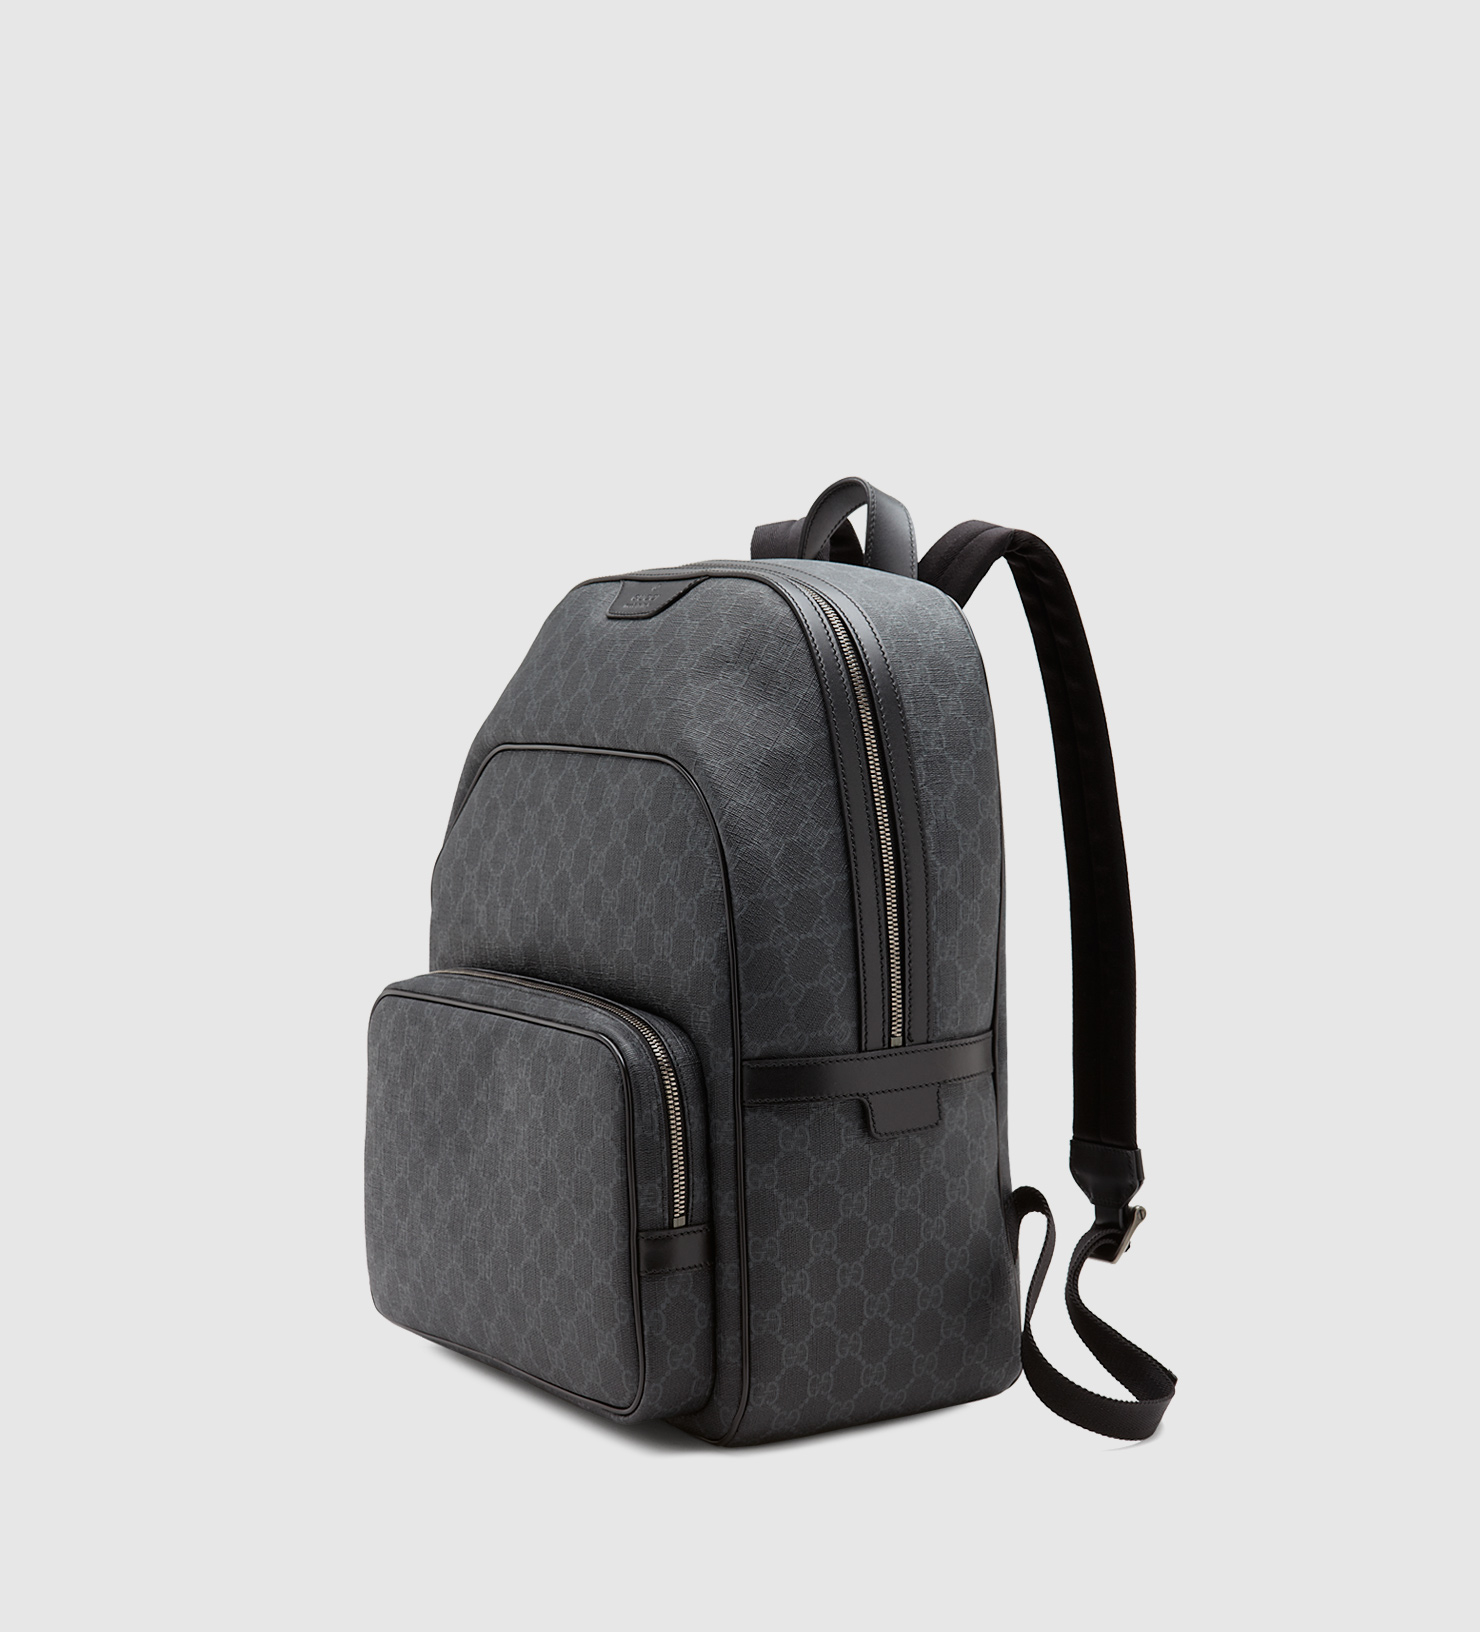 331c069dc919 ... Gucci Gg Supreme Canvas Backpack in Gray for Men Lyst